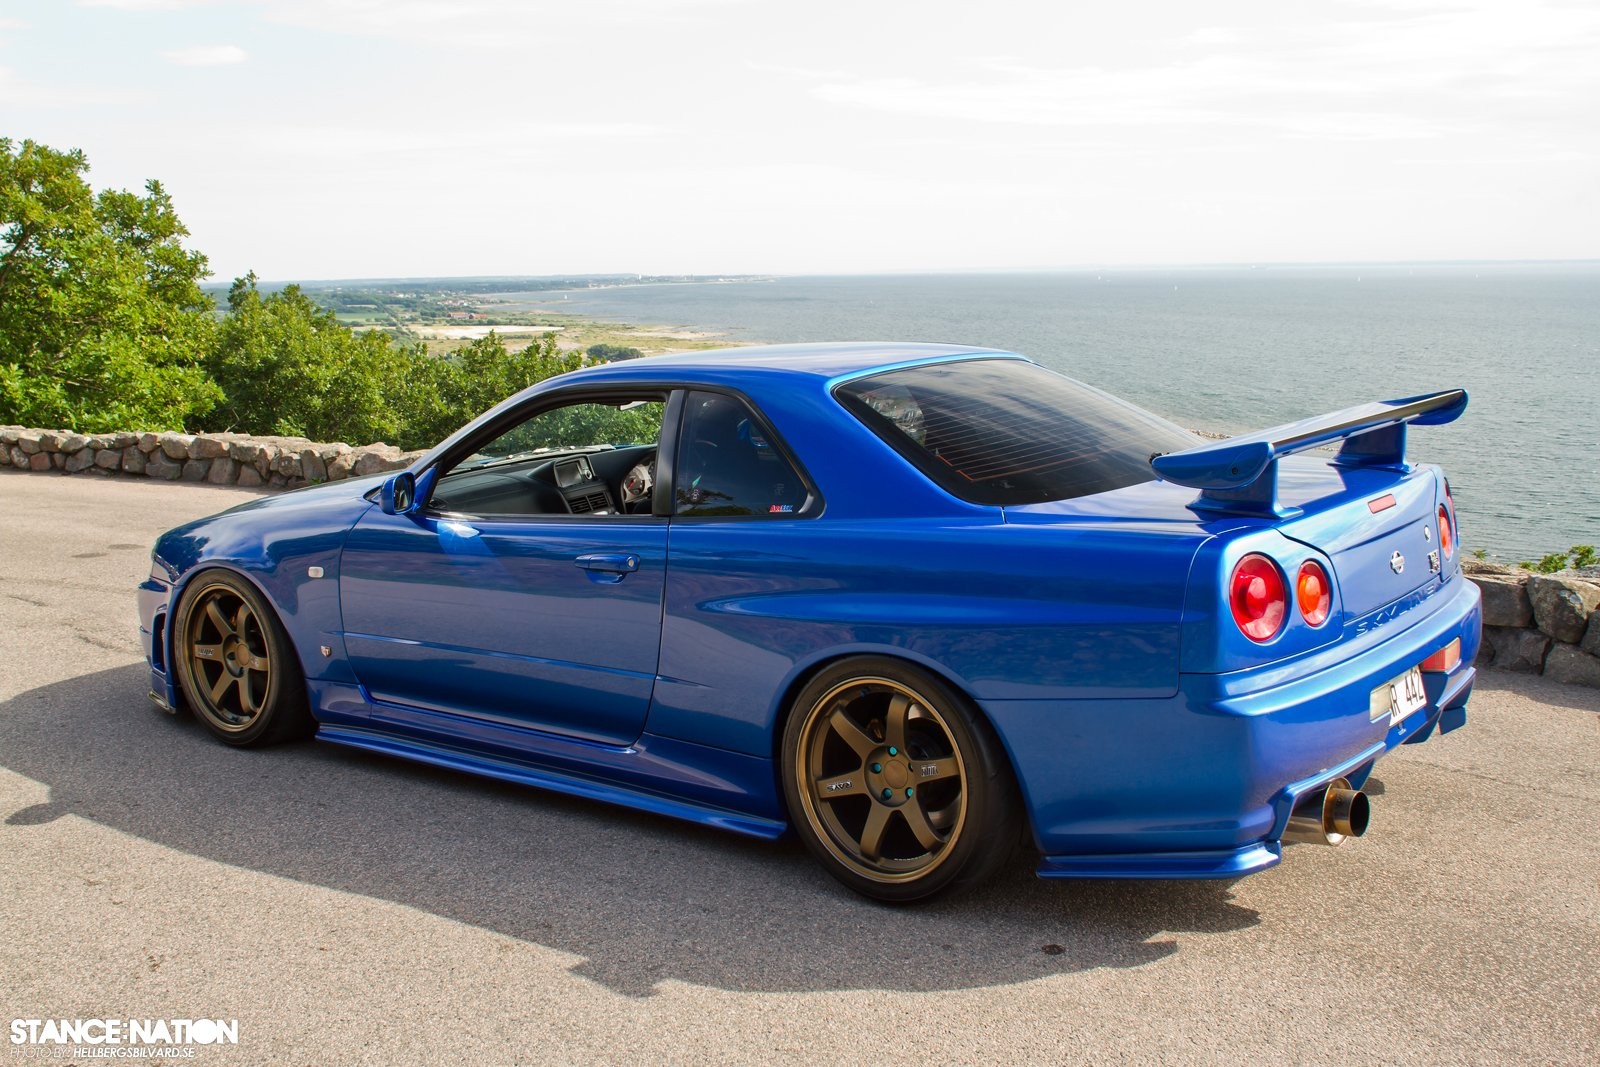 2001 Nissan Skyline R34 Gt R Tuning Custom Supercar